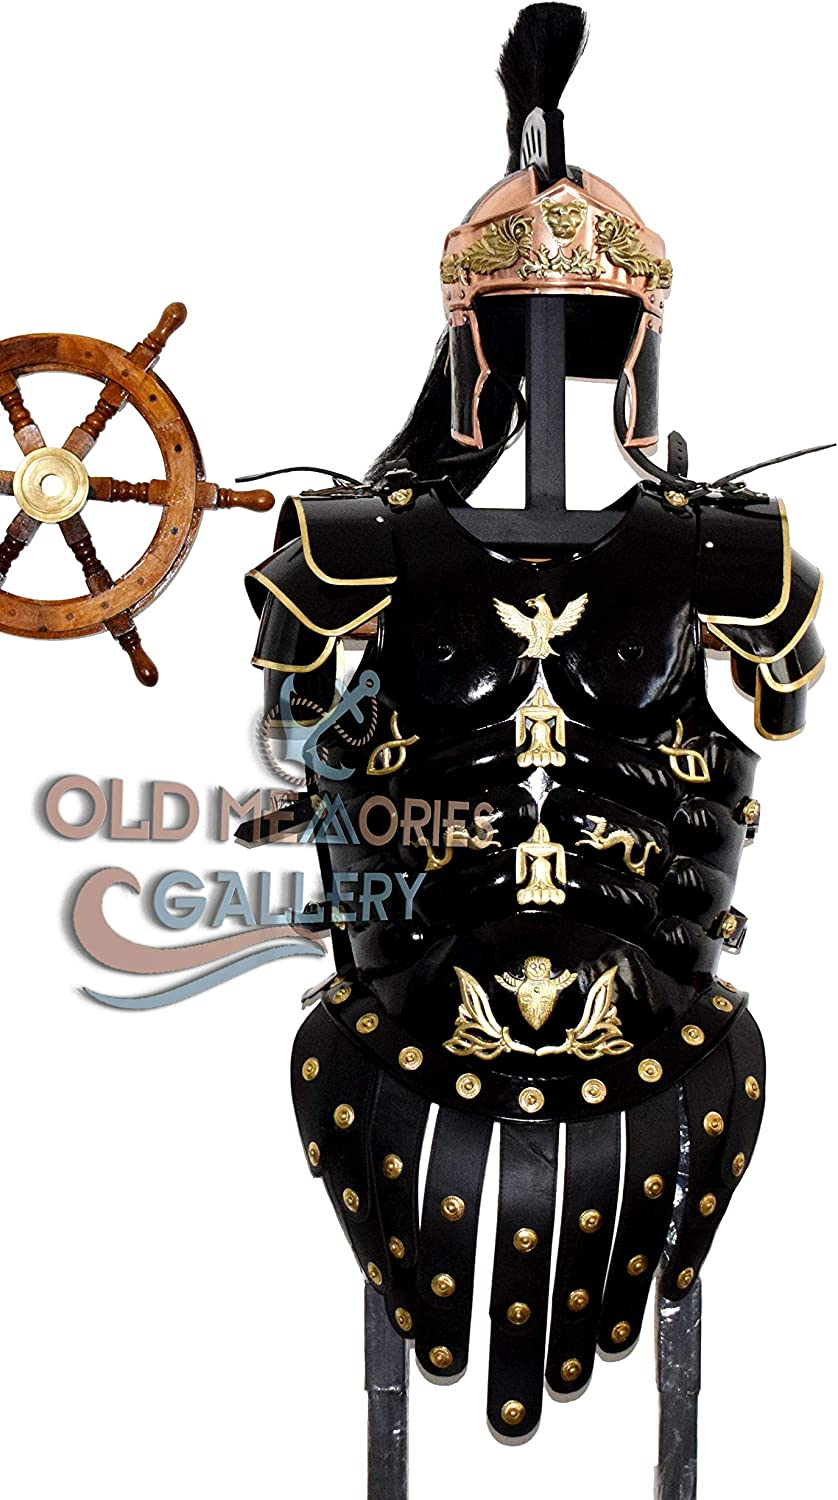 Old Memories Gallery Medieval Romano Armadura Muscle Armor Cuirass ...